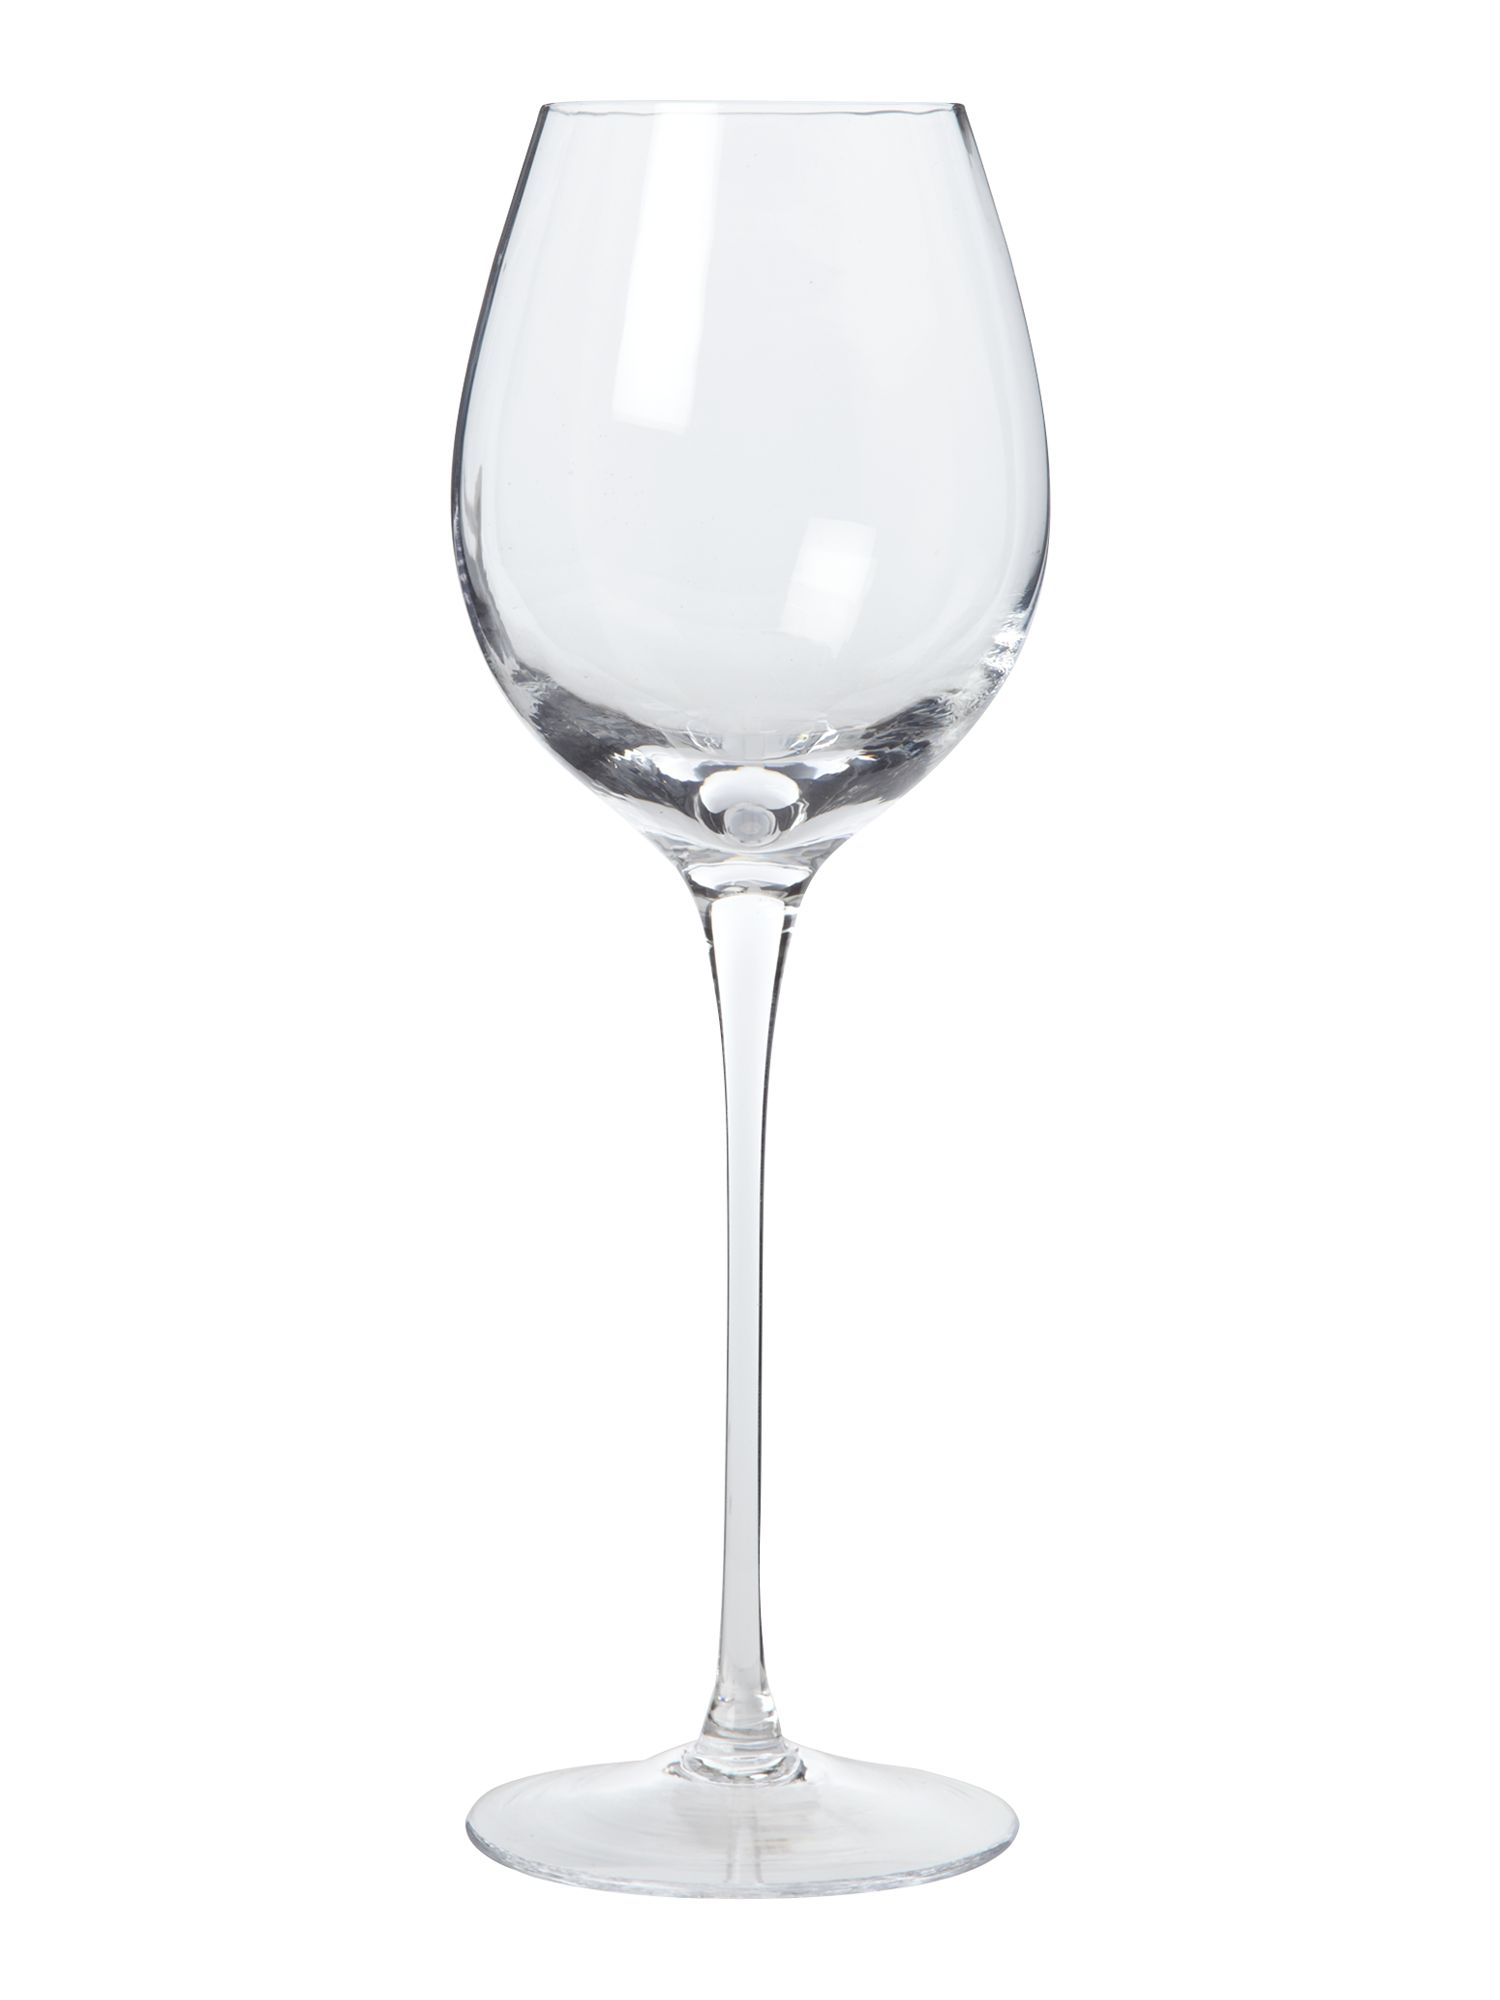 Aurelia white wine glasses, set of 4